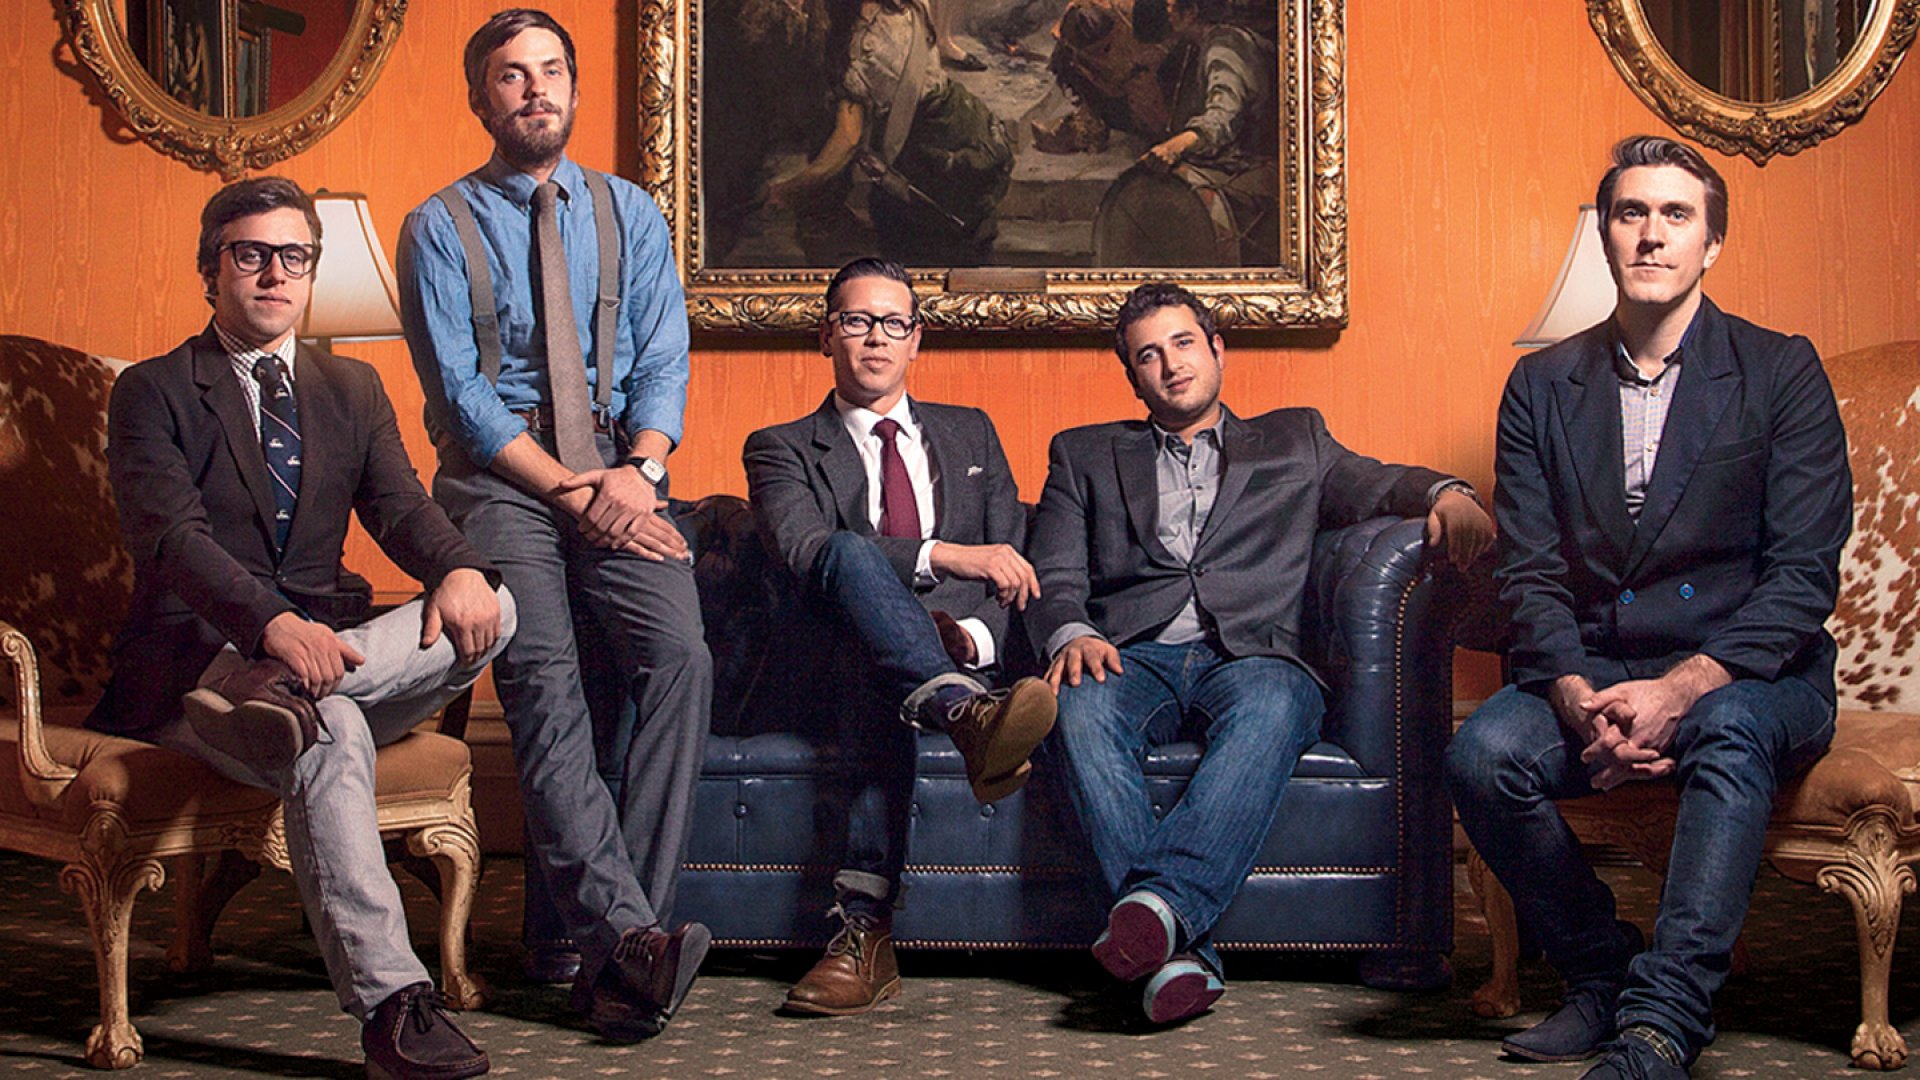 <b>Company Men</b> Branding and design firm PB&J has merged twice since 2011. Above, the partners in the unified company (from left), Alex Aeschbury, Mike Nauman, Emmit Jones, Zach Darmanian-Harris, and Micah Paldino.